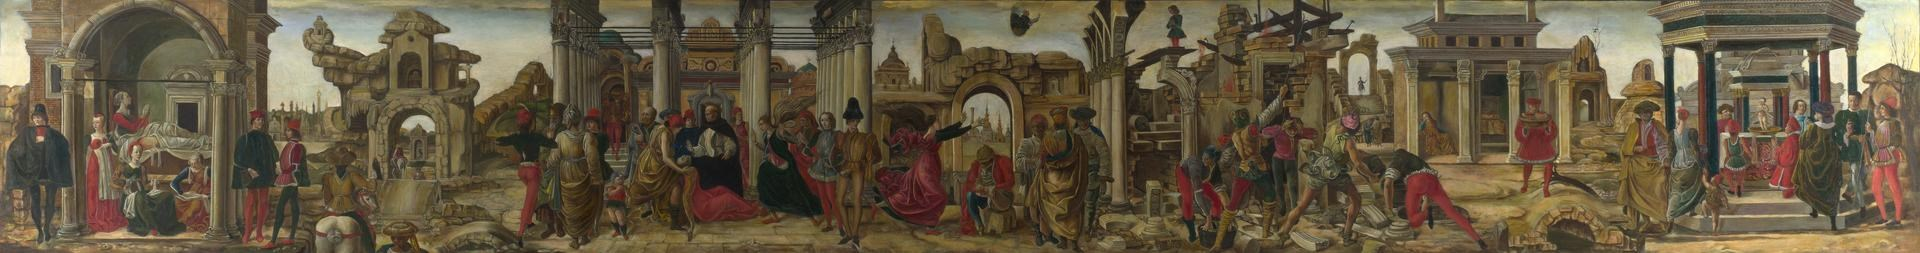 Scenes from the Life of Saint Vincent Ferrer by After Francesco del Cossa (Carrine Palmieri and Rosa Falcone)